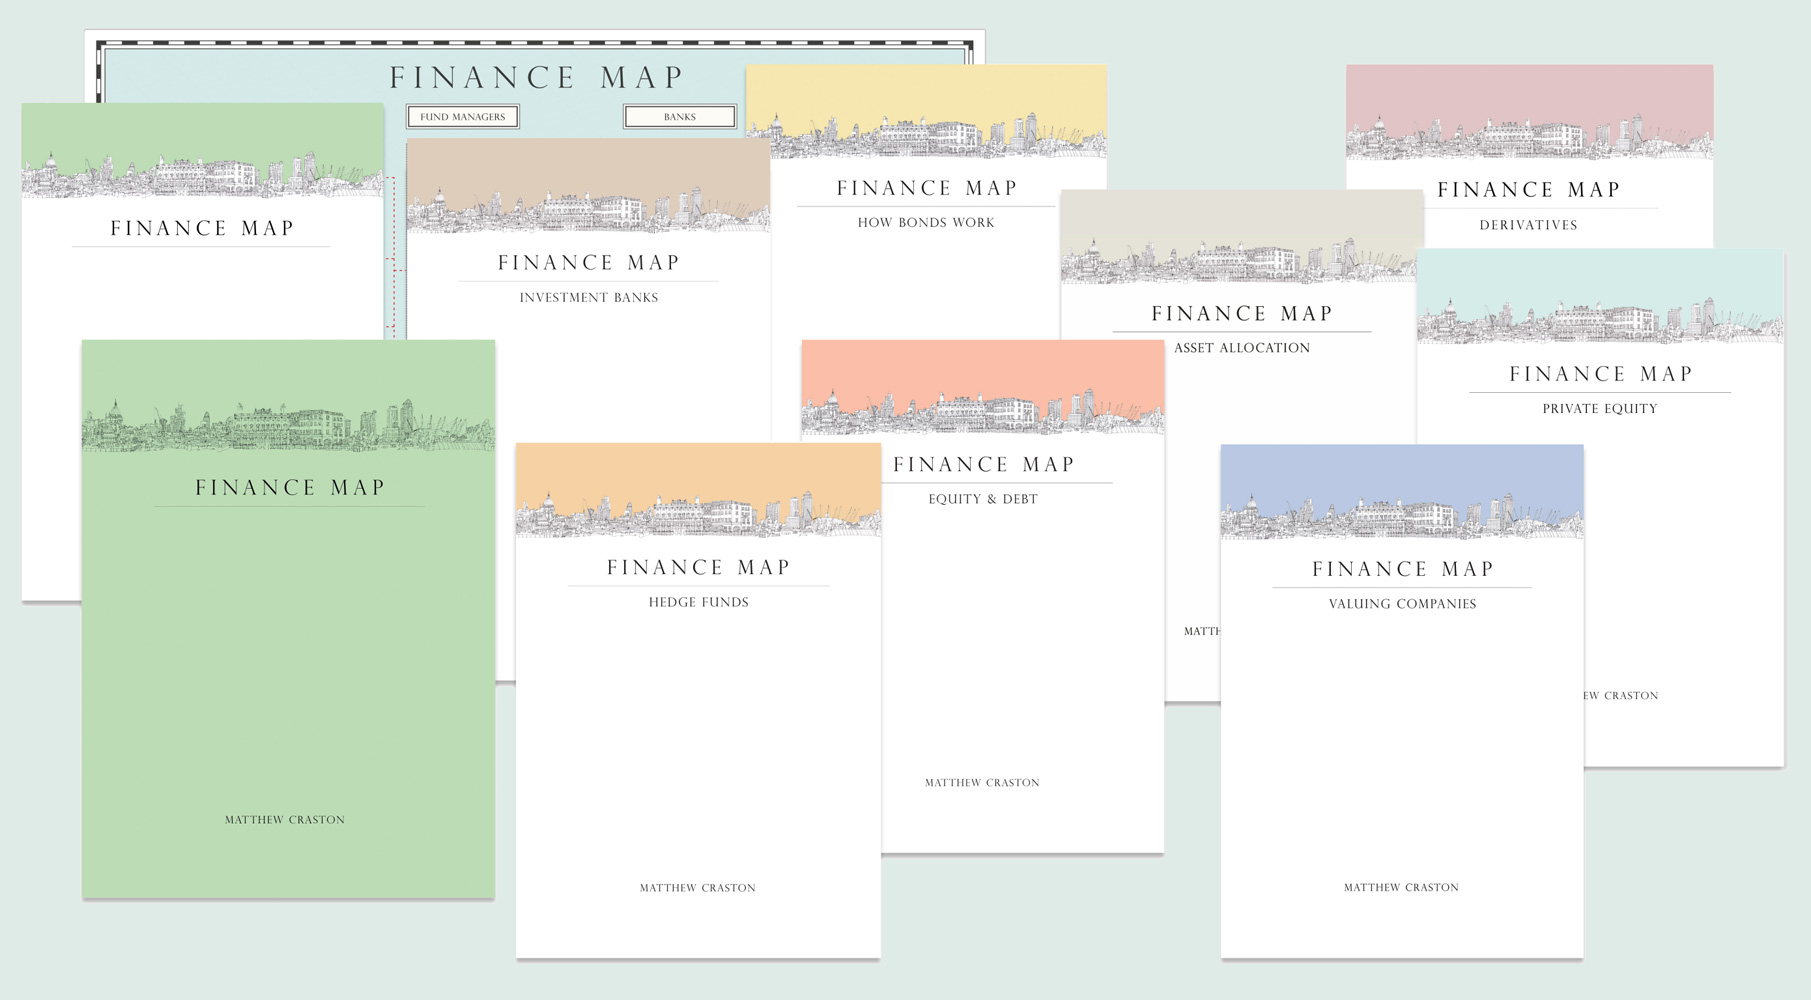 FINANCE MAP FOR INDIVIDUALS